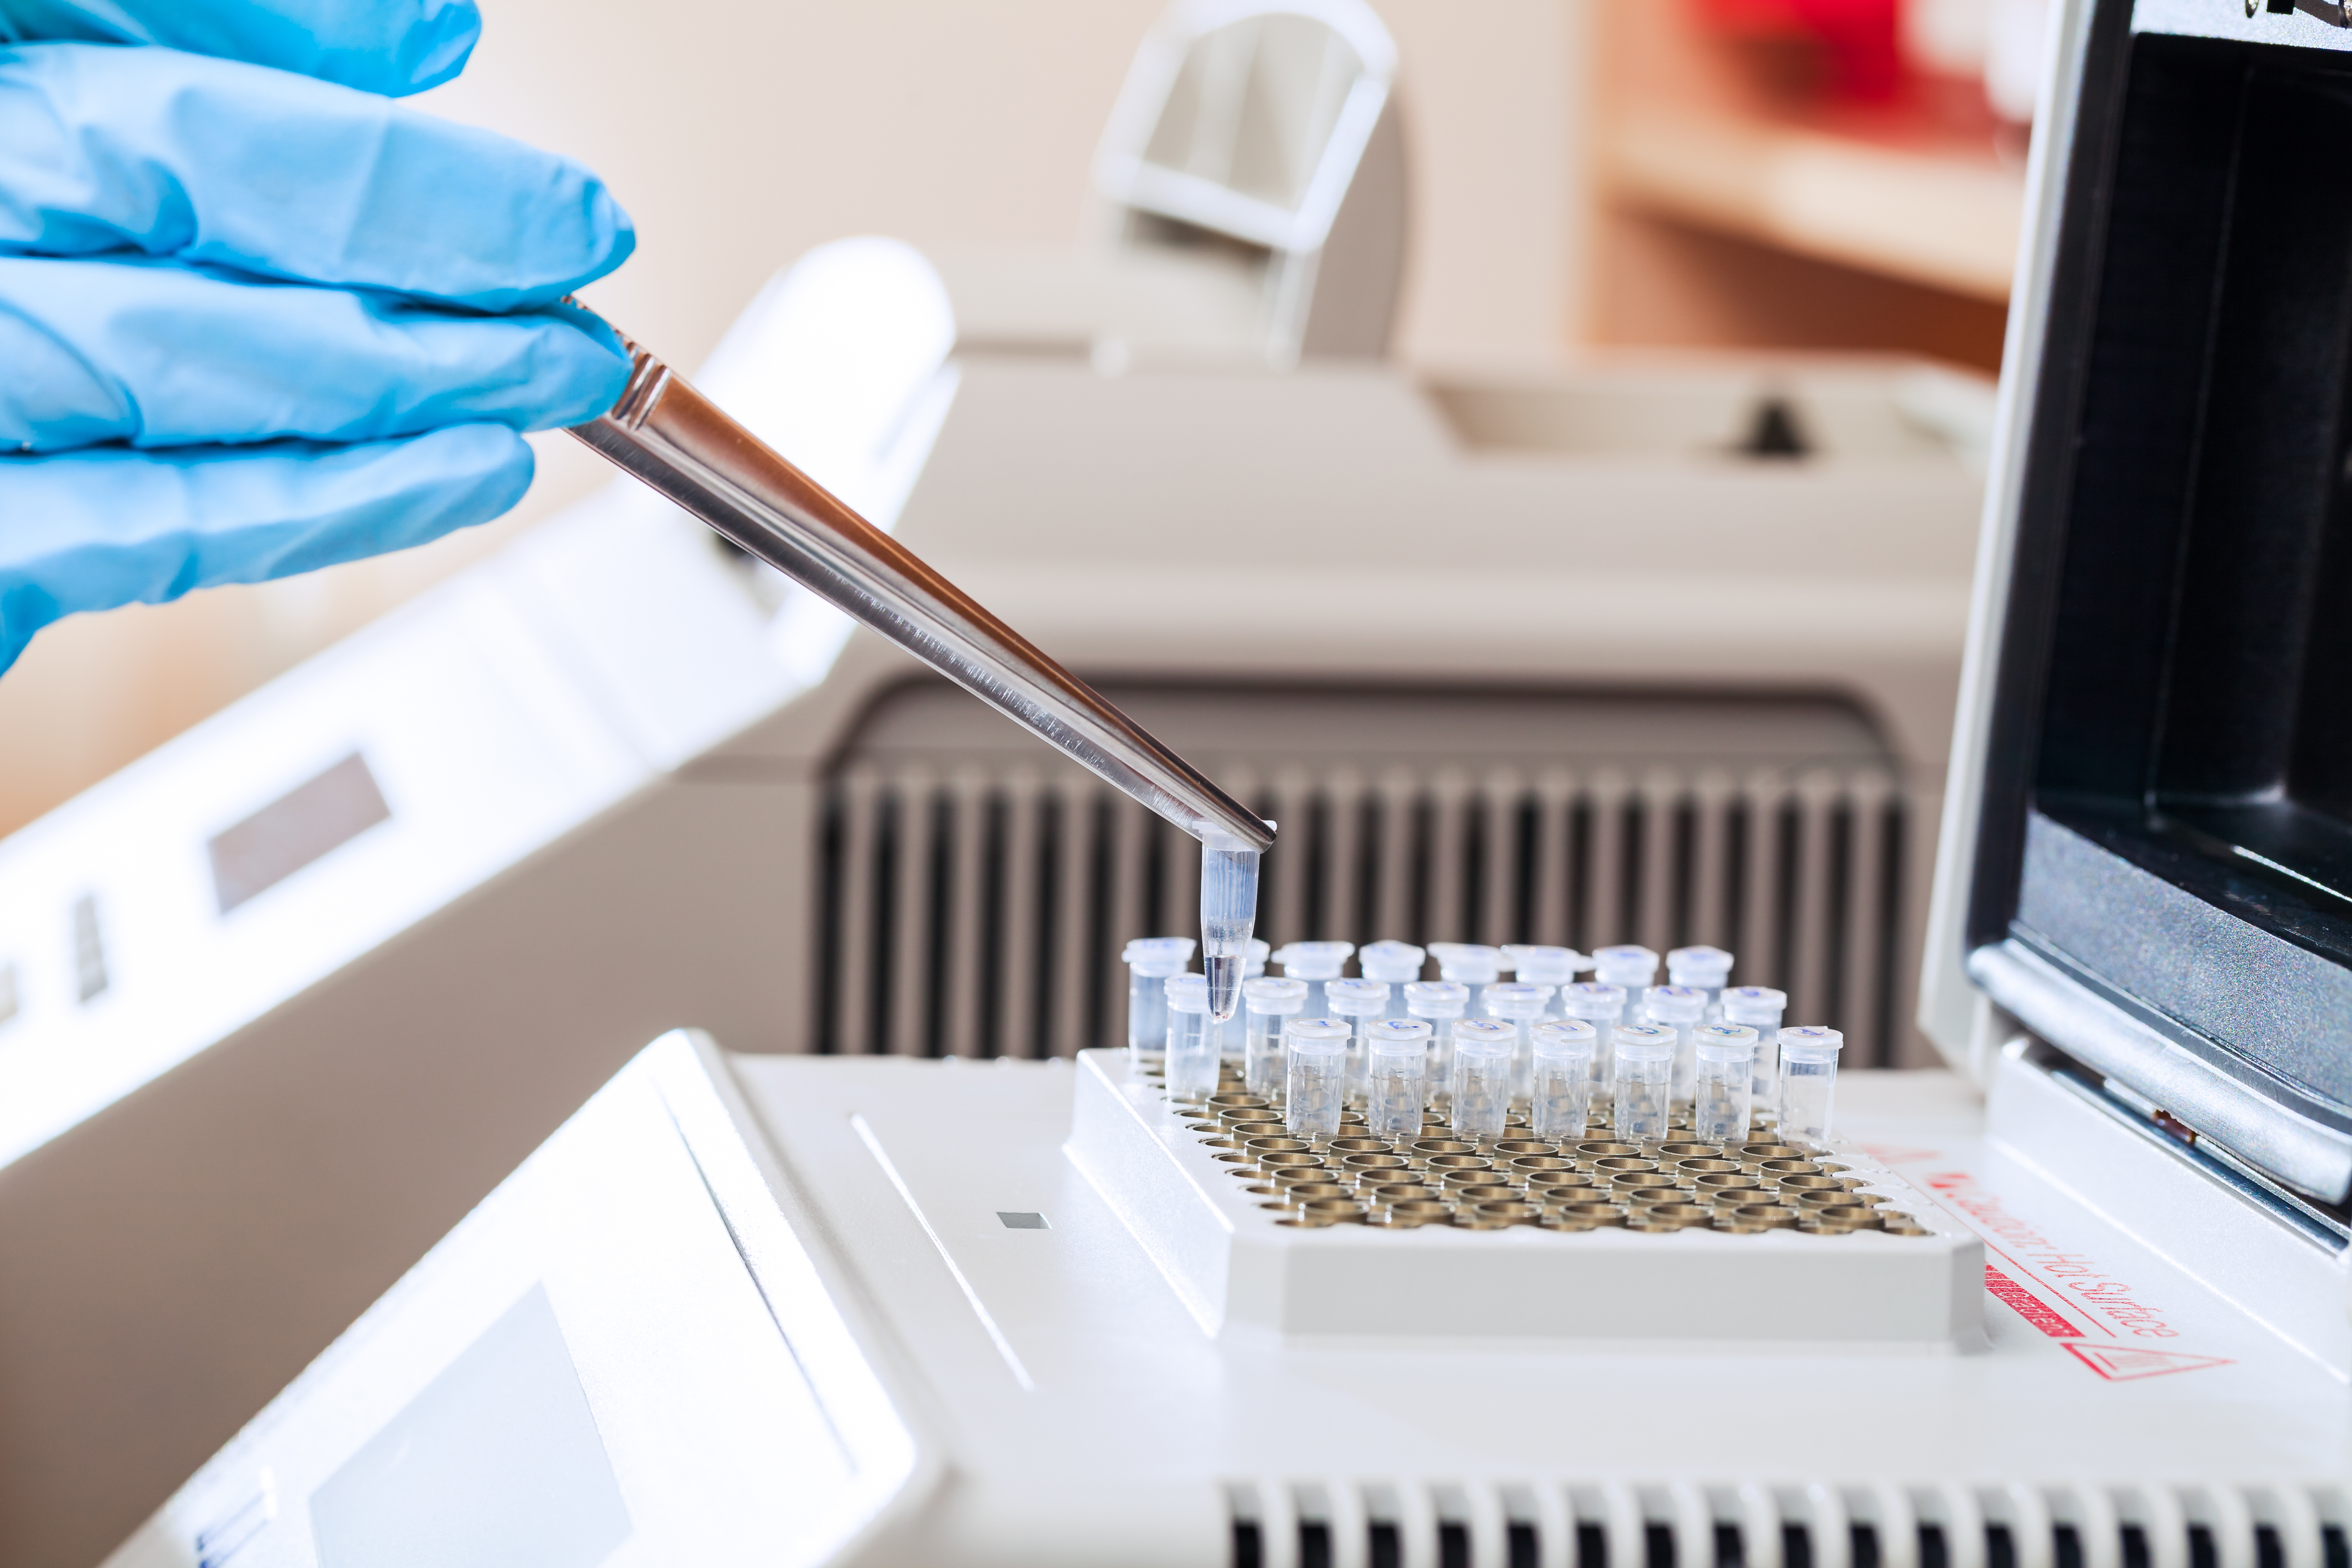 Technician Loading Test Tubes with Sampled DNA for Polymerase Chain Reaction